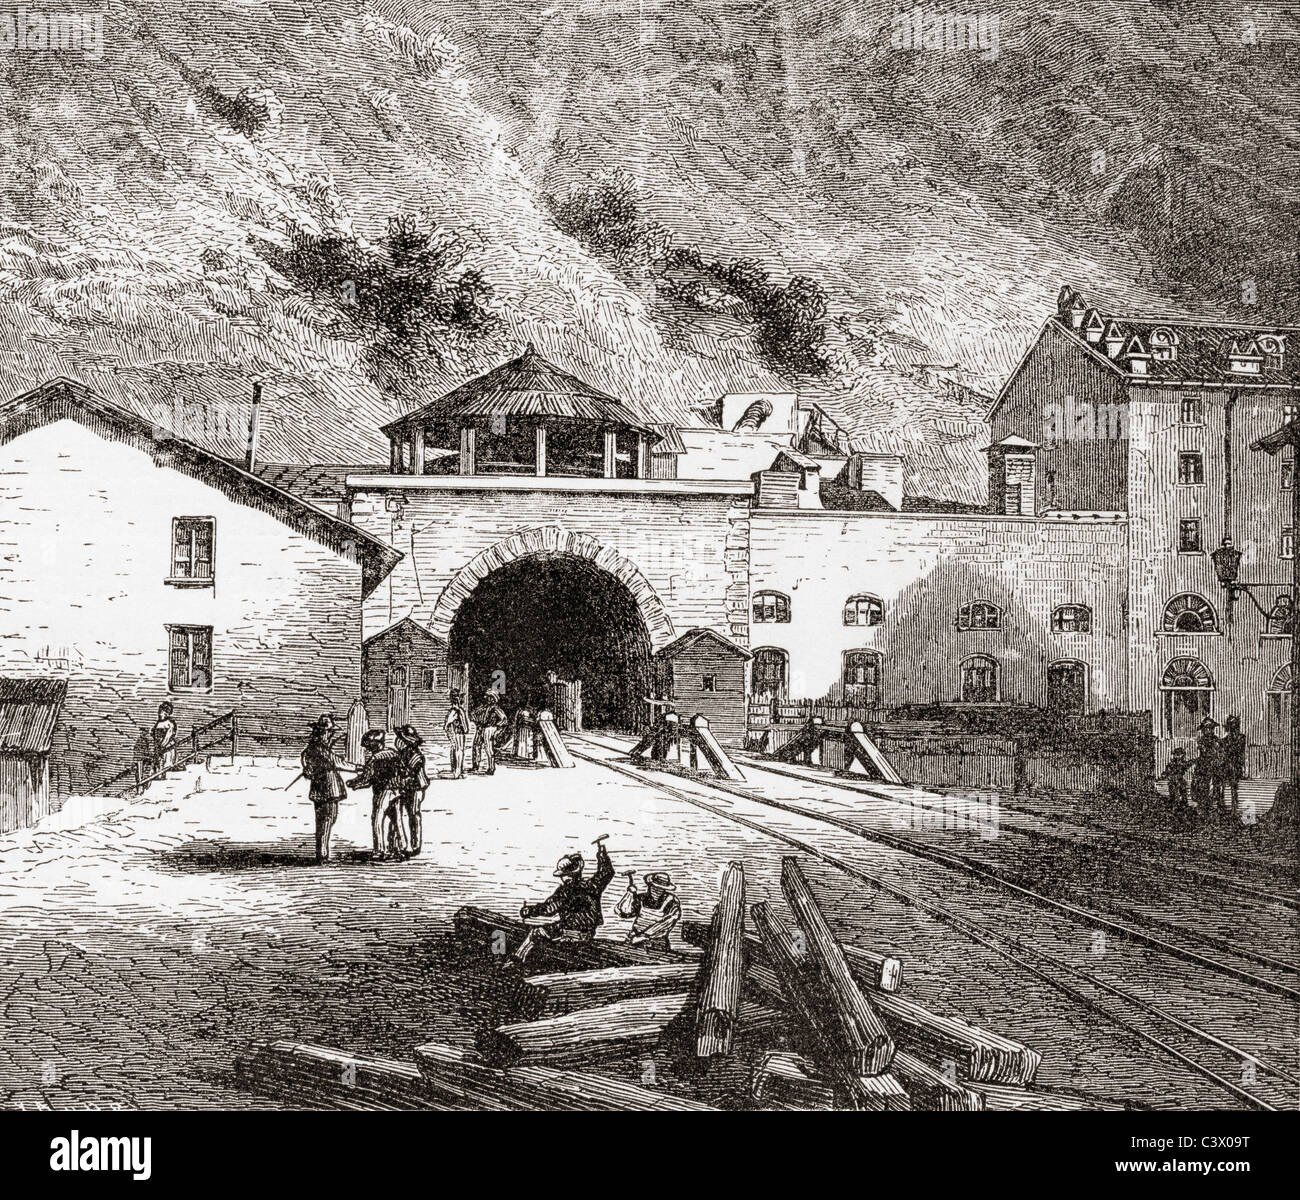 The Fréjus Rail Tunnel also called The Mont Cenis Tunnel, European Alps - Stock Image